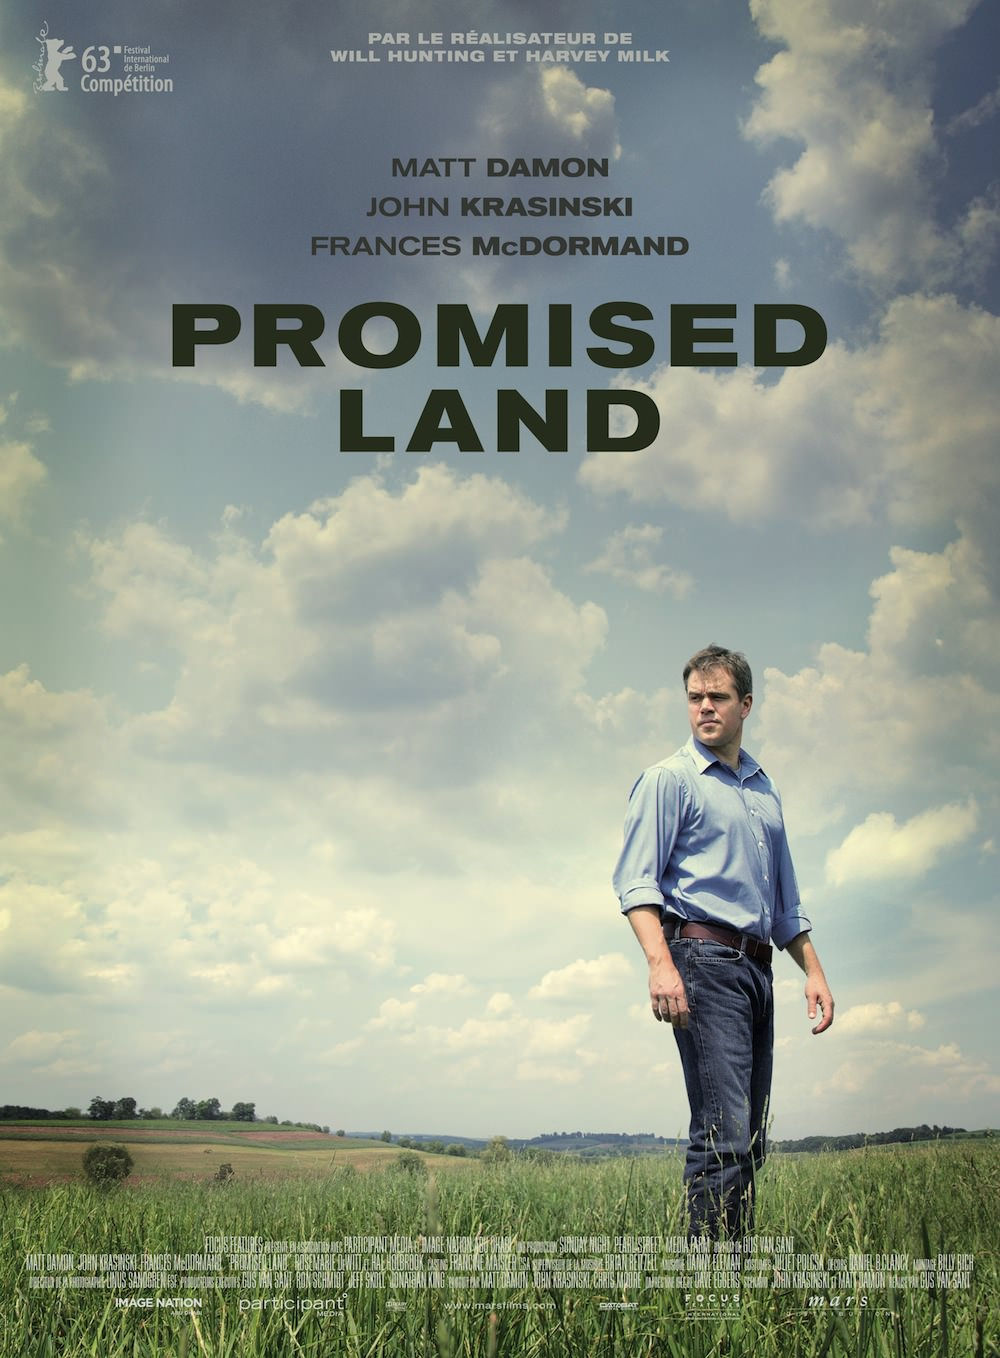 Promised land gus van sant